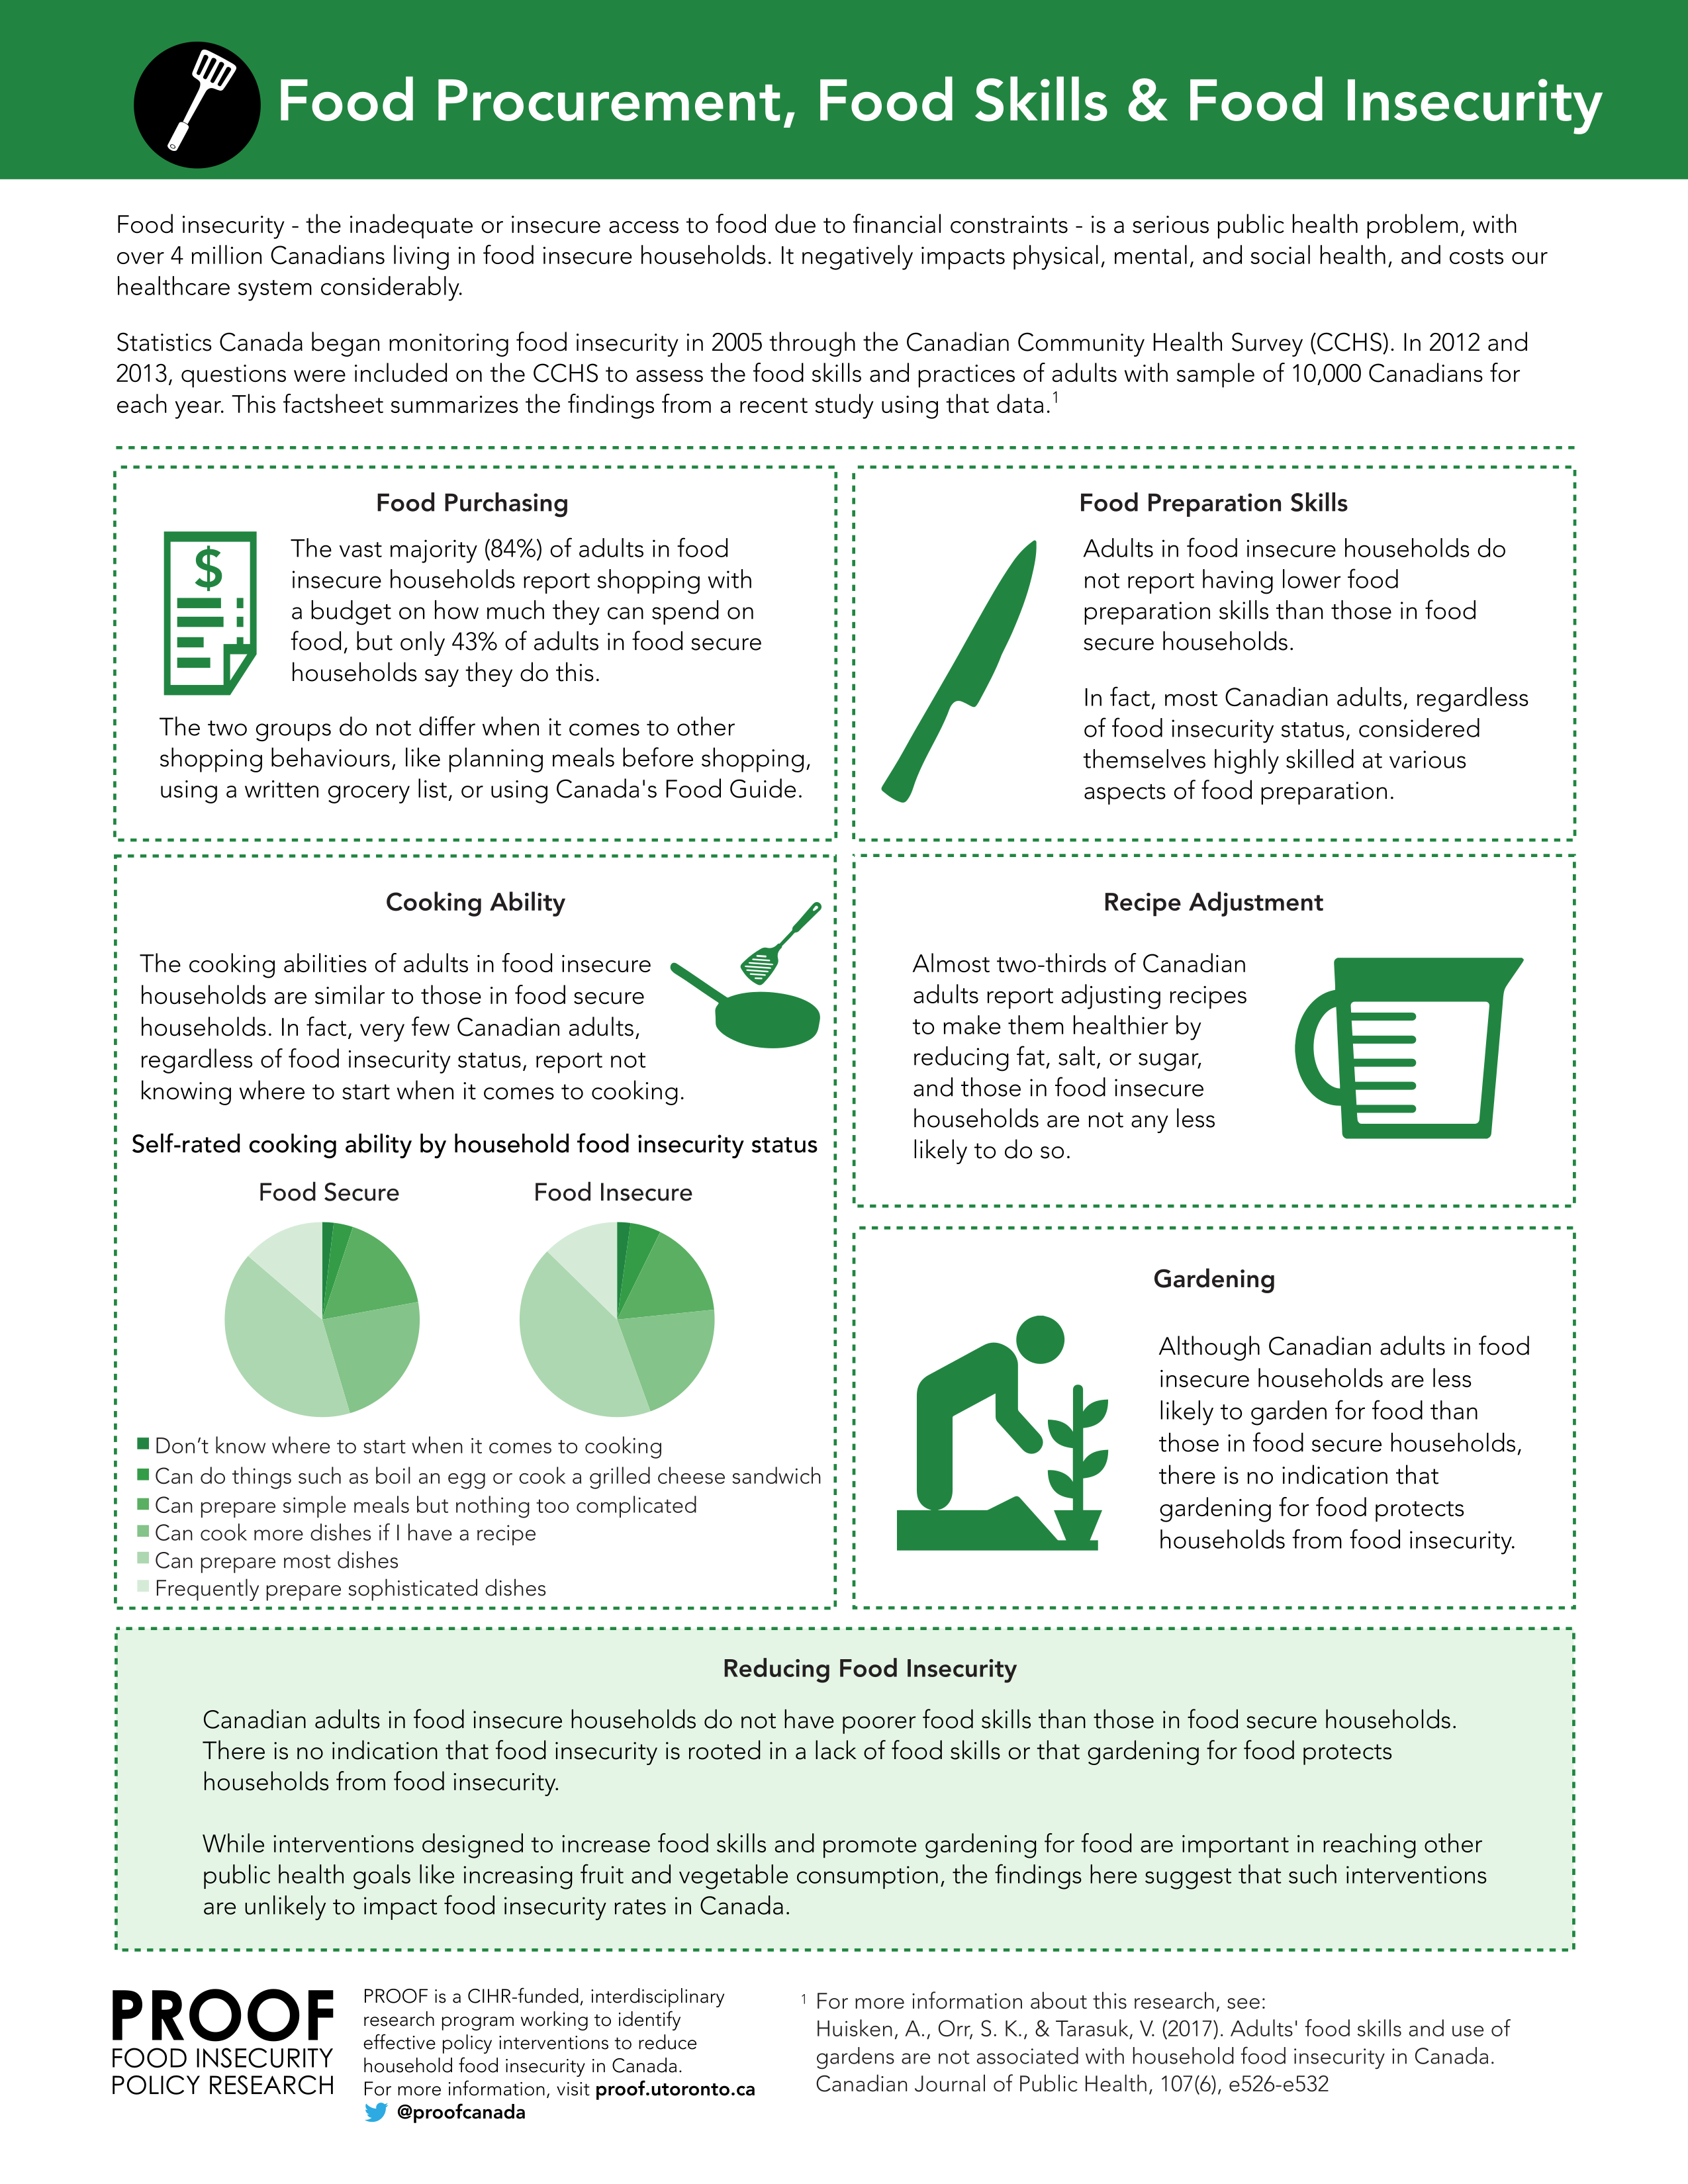 fact sheet essay Guide to persuasive writing activity sheet that can be researched so you can find facts and examples to support differing points of view in your essay.